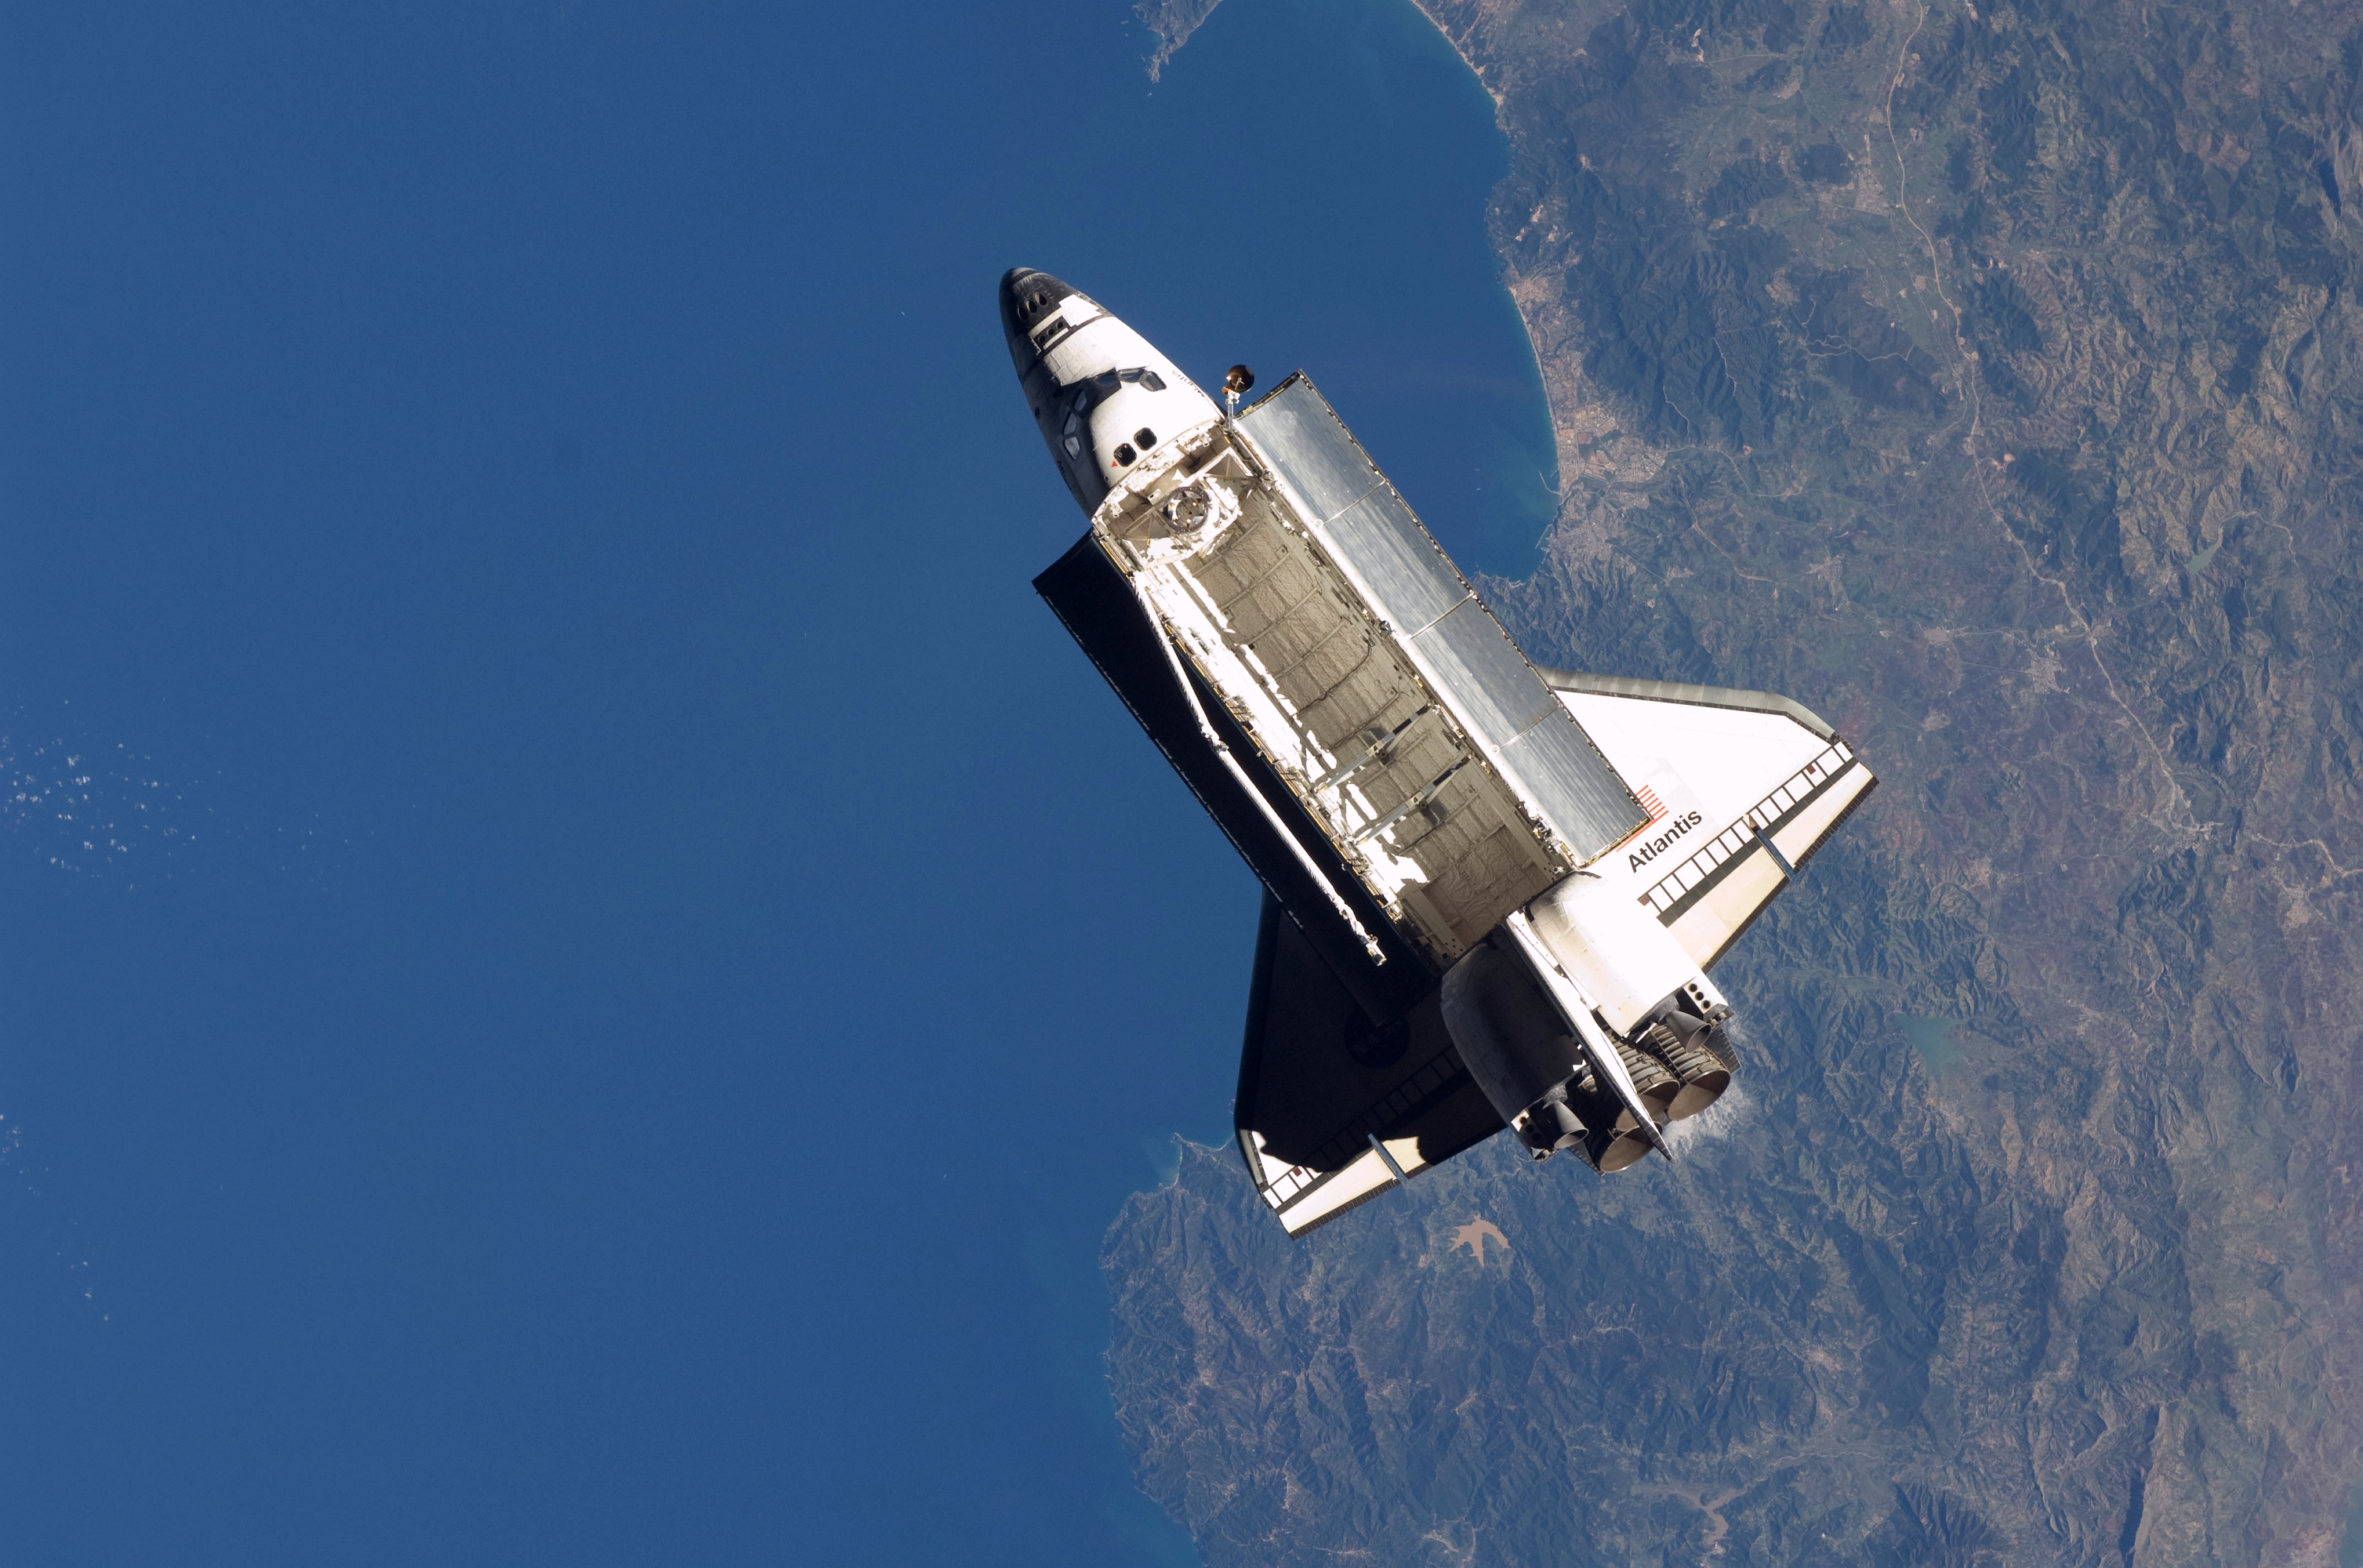 High Resolution Wallpaper Space Shuttle in Space - Pics ...